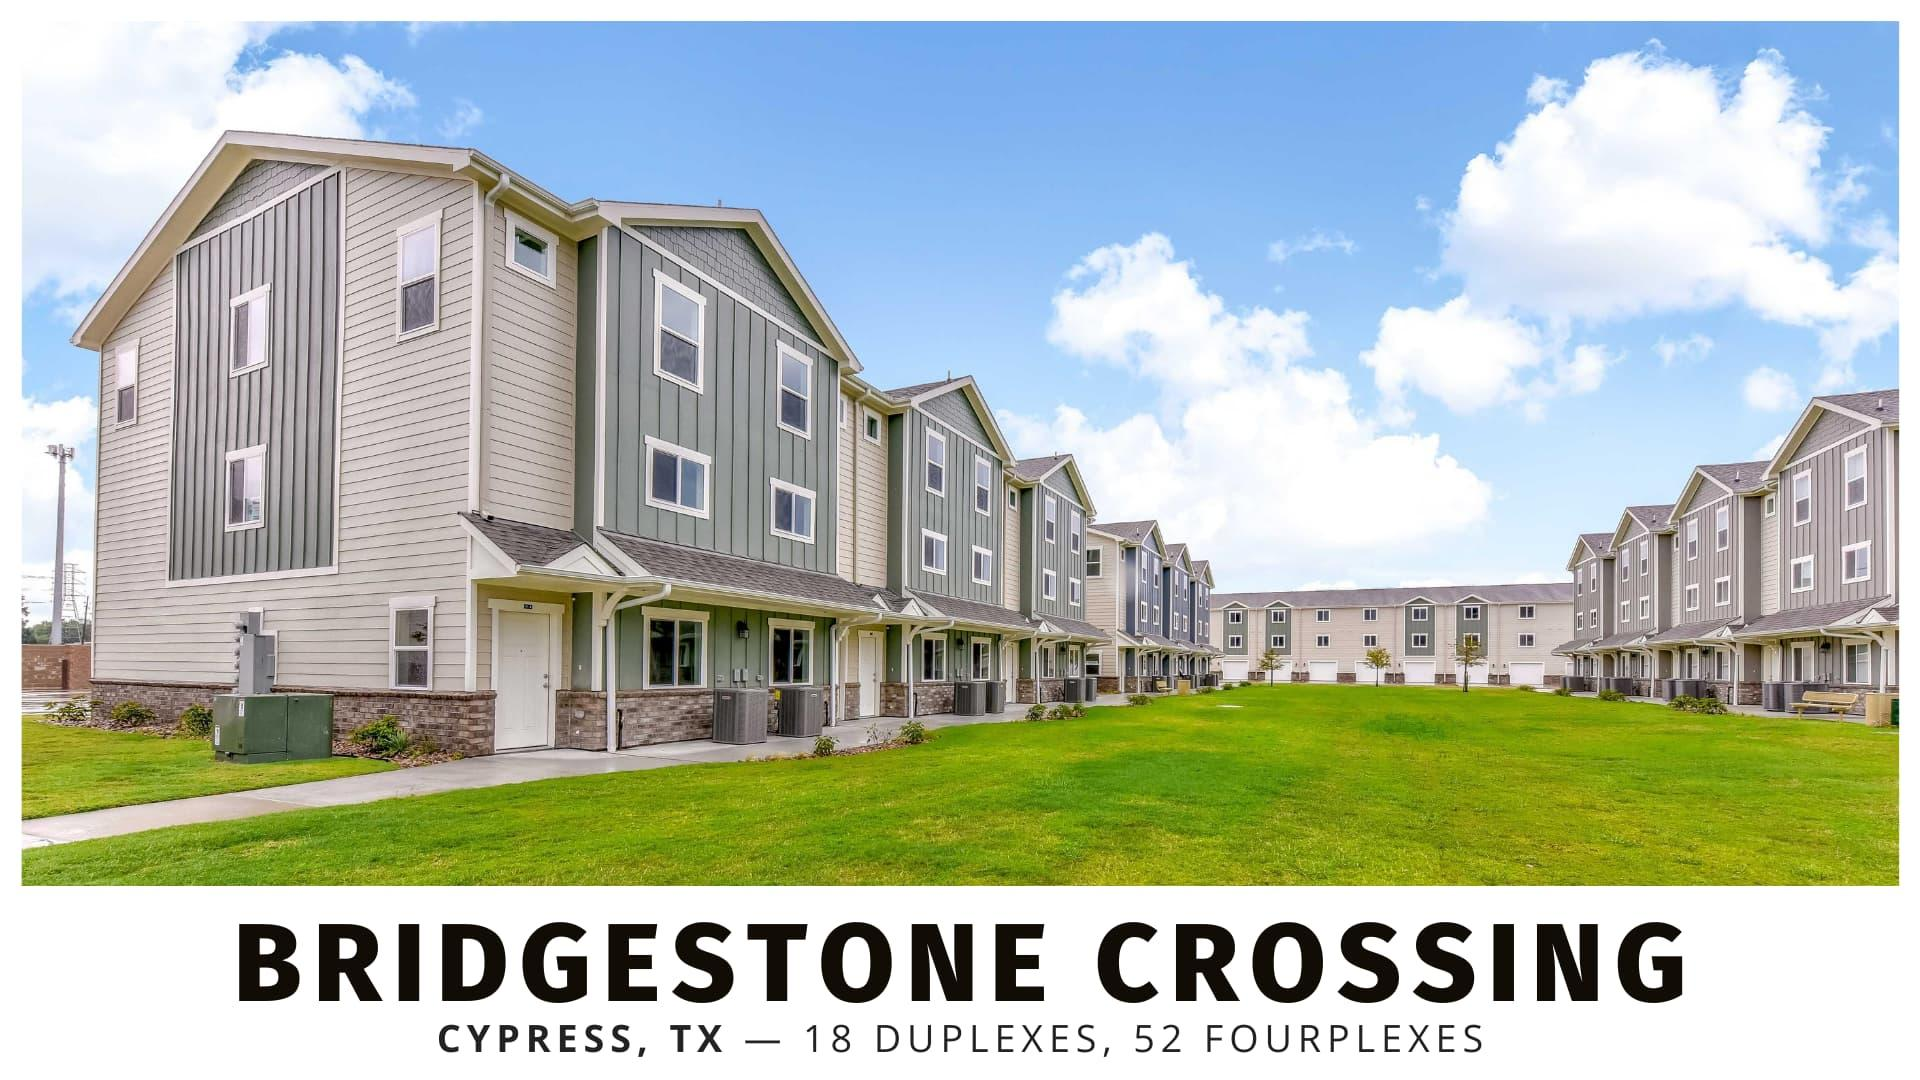 Bridgestone Crossing multifamily development in Cypress, Texas